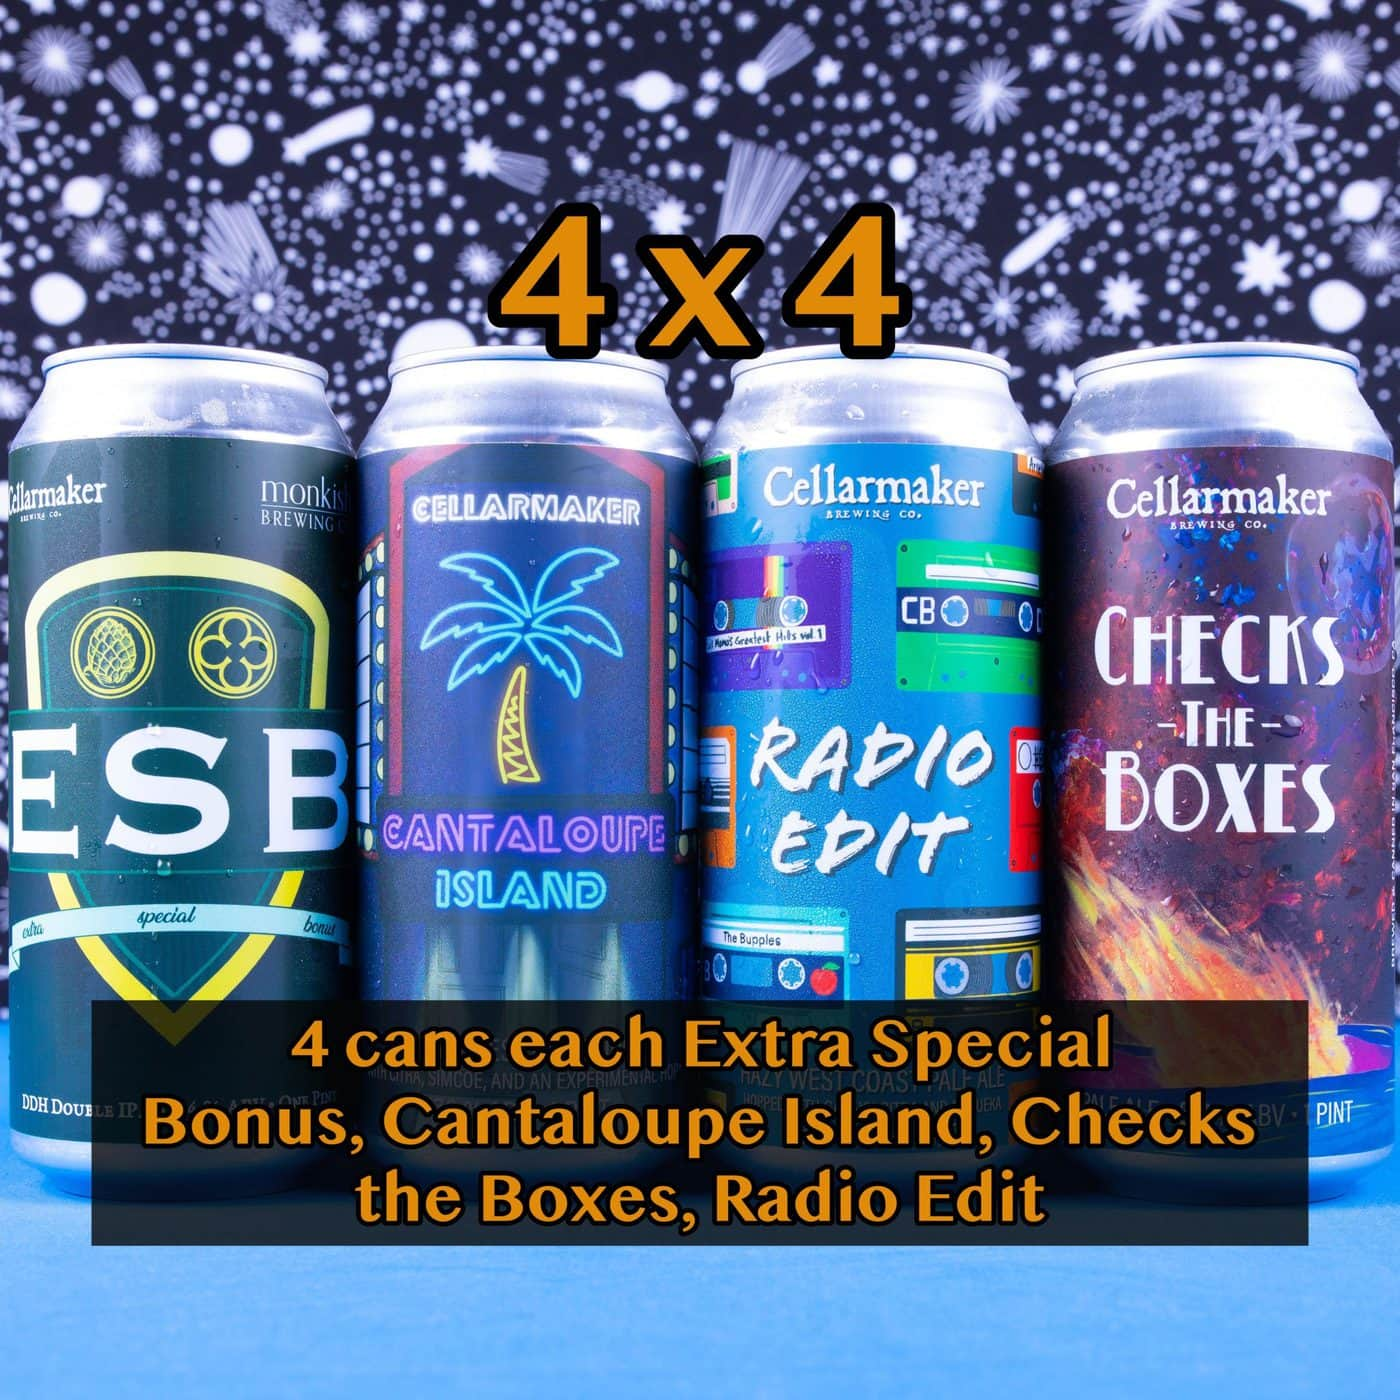 4X4 CASE 16 CANS – 4 Checks The Boxes Pale Ale, 4 Radio Edit Pale Ale, 4 Cantaloupe Island IPA And 4 Extra Special Bonus DDH DIPA… SHIPPING Out On WEDNESDAY 12/2 For NEXT DAY Delivery*